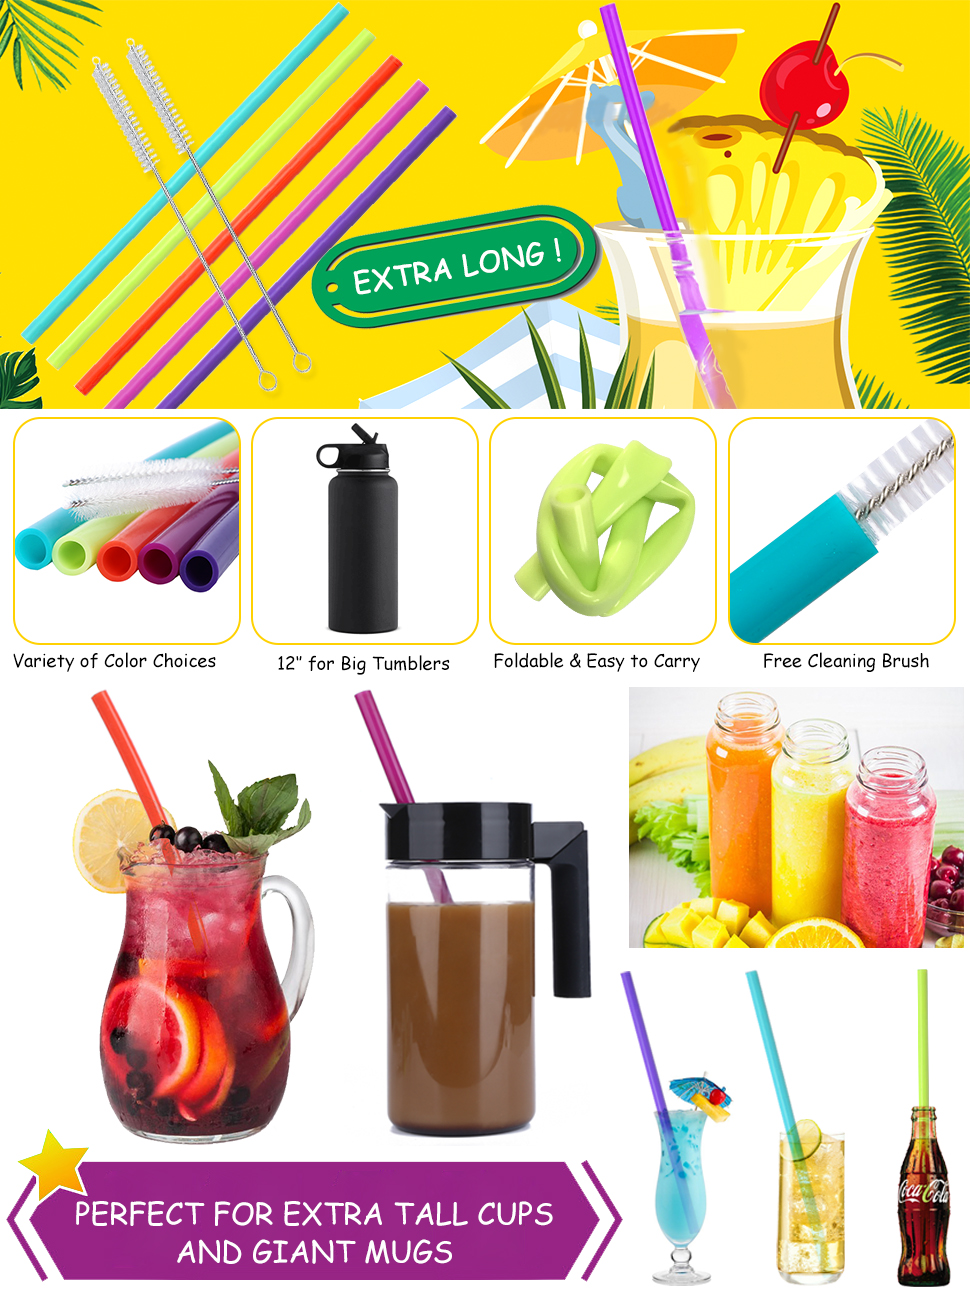 Hiware 12 Inch Extra Long Silicone Straws For Big Fitti Rainbow Regular S 12x12 Bags Product Description